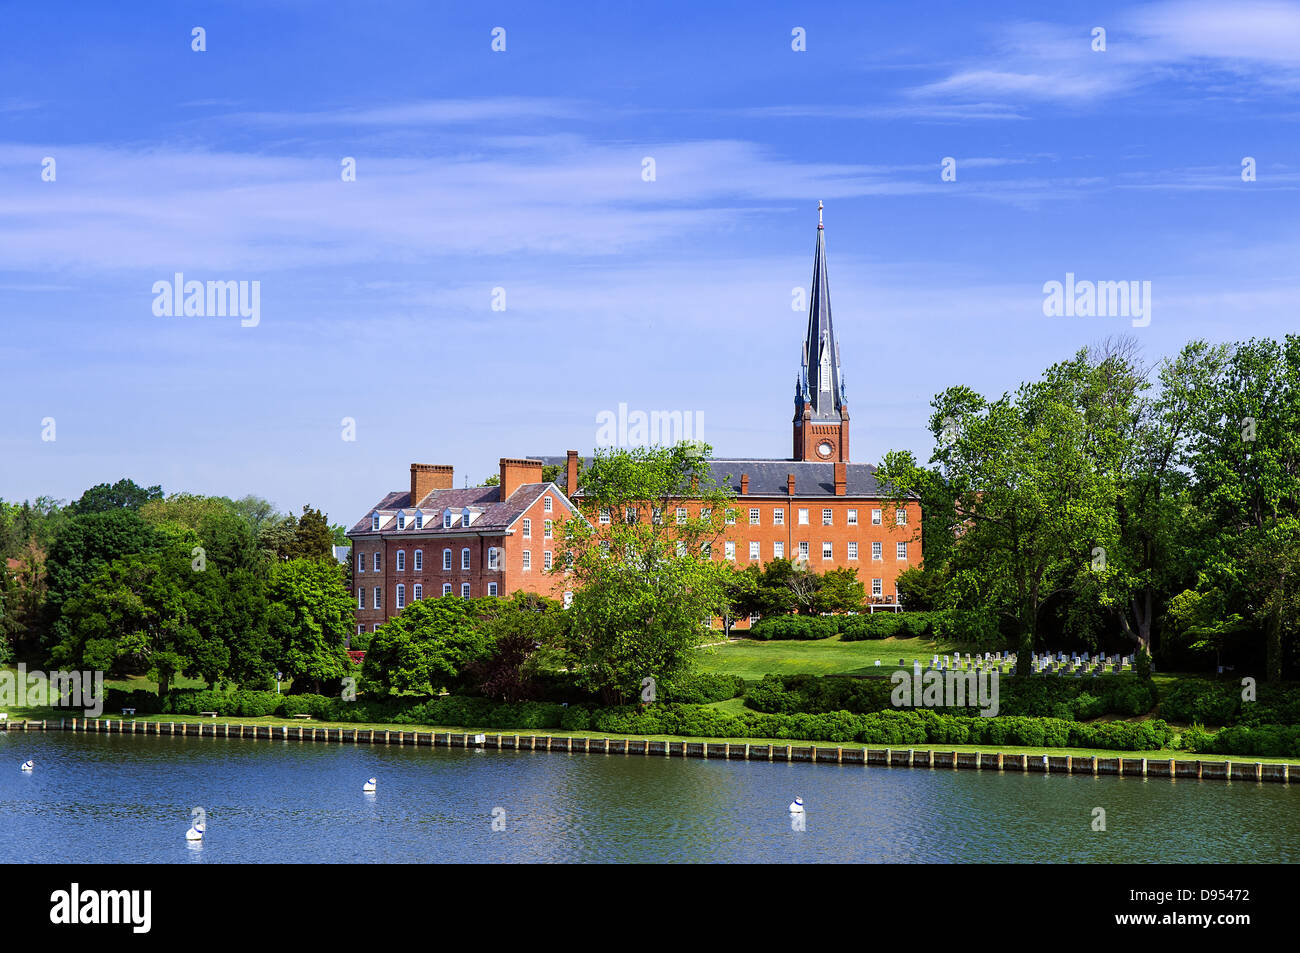 Historic Charles Carroll House and St Mary's Church, Annapolis, Maryland, USA - Stock Image